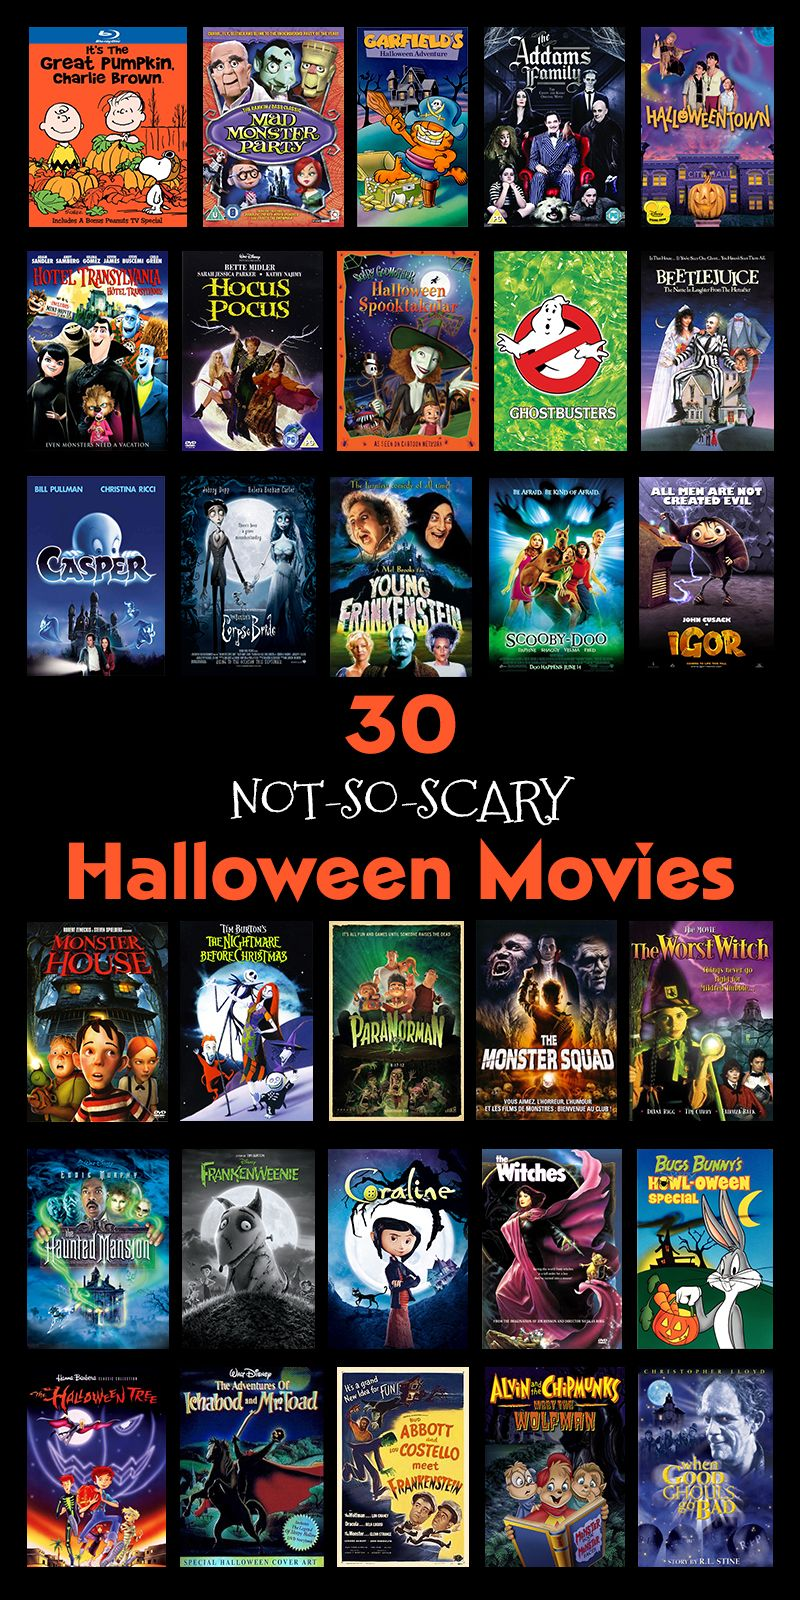 30 not so scary halloween movies 39 tis the season halloween movies pinterest halloween. Black Bedroom Furniture Sets. Home Design Ideas